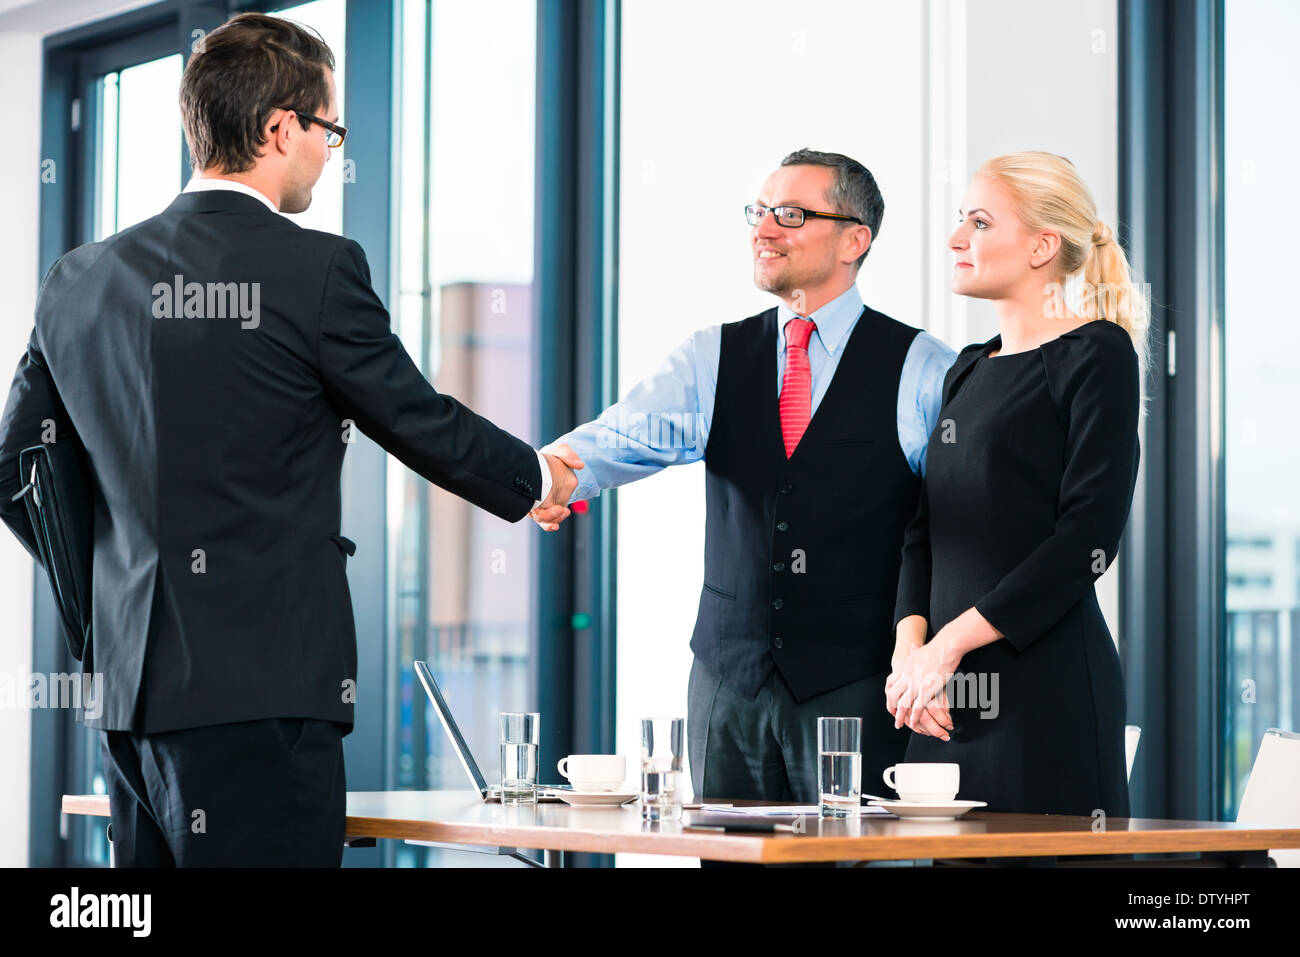 Business - young man in job interview for hiring, welcomes, Boss or Senior and his female Assistant in their office - Stock Image